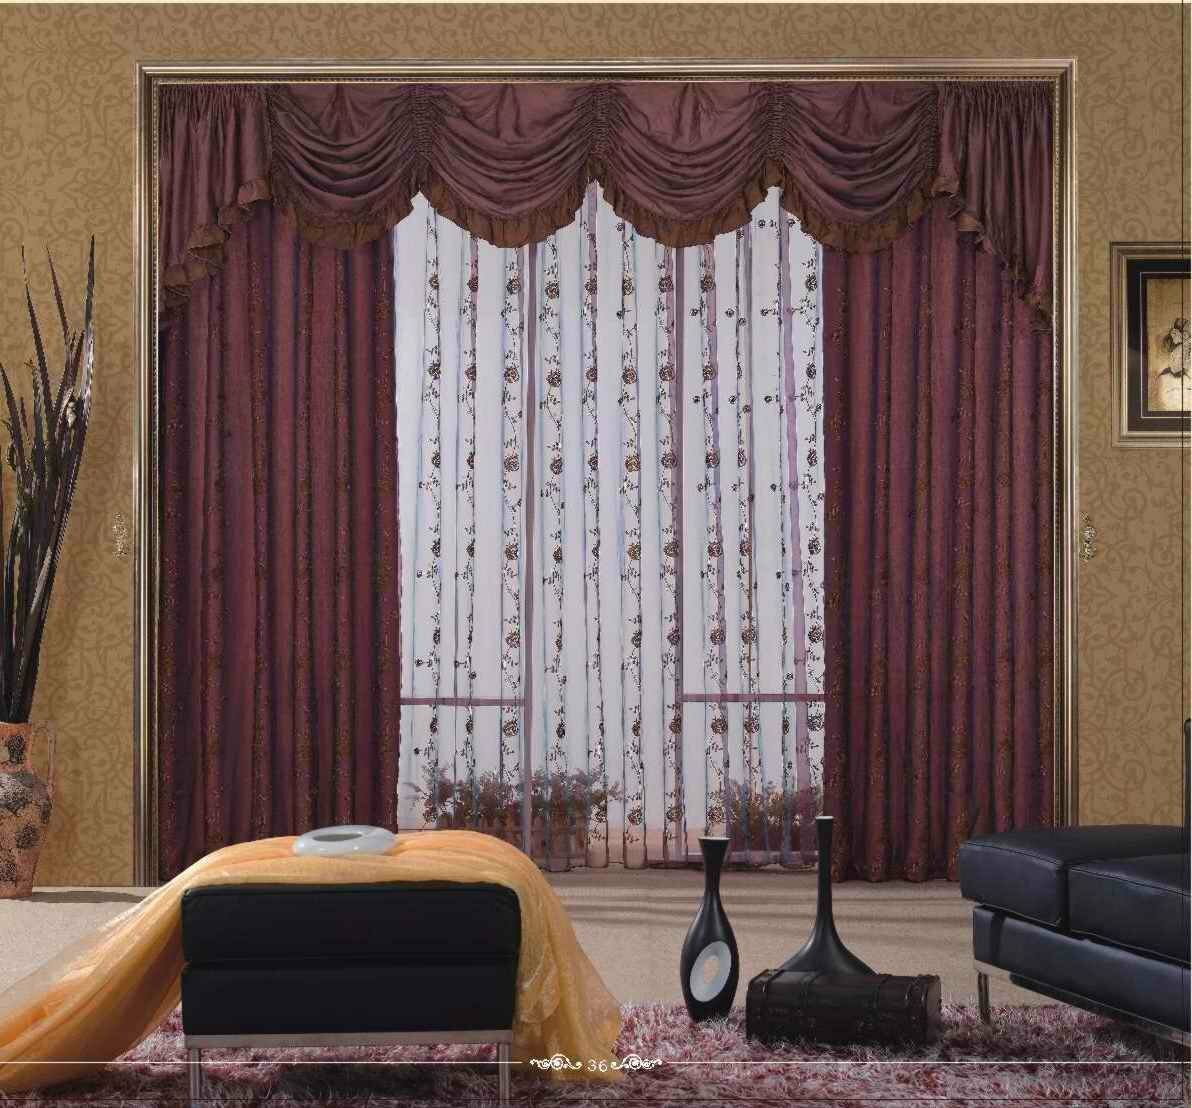 Where To Buy Valances | Living Room Valances | Window Valance Curtains Photo